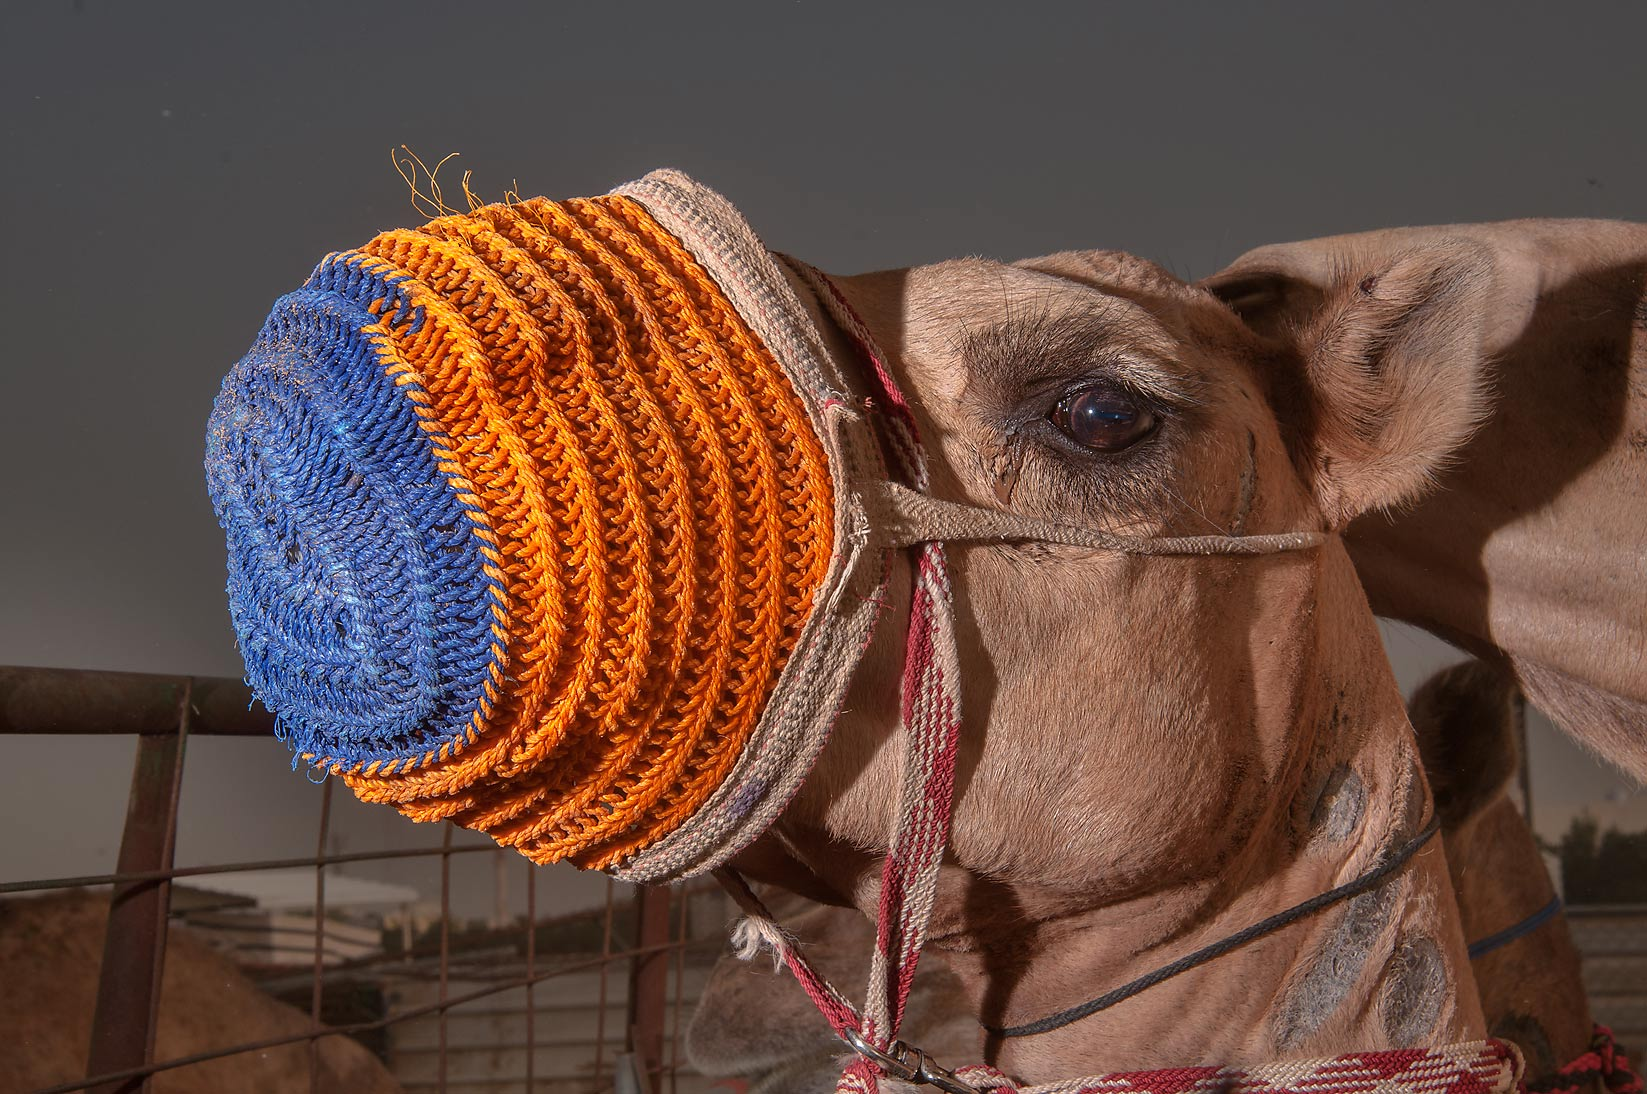 Camel sporting orange and blue muzzle in livestock markets in Abu Hamour. Doha, Qatar